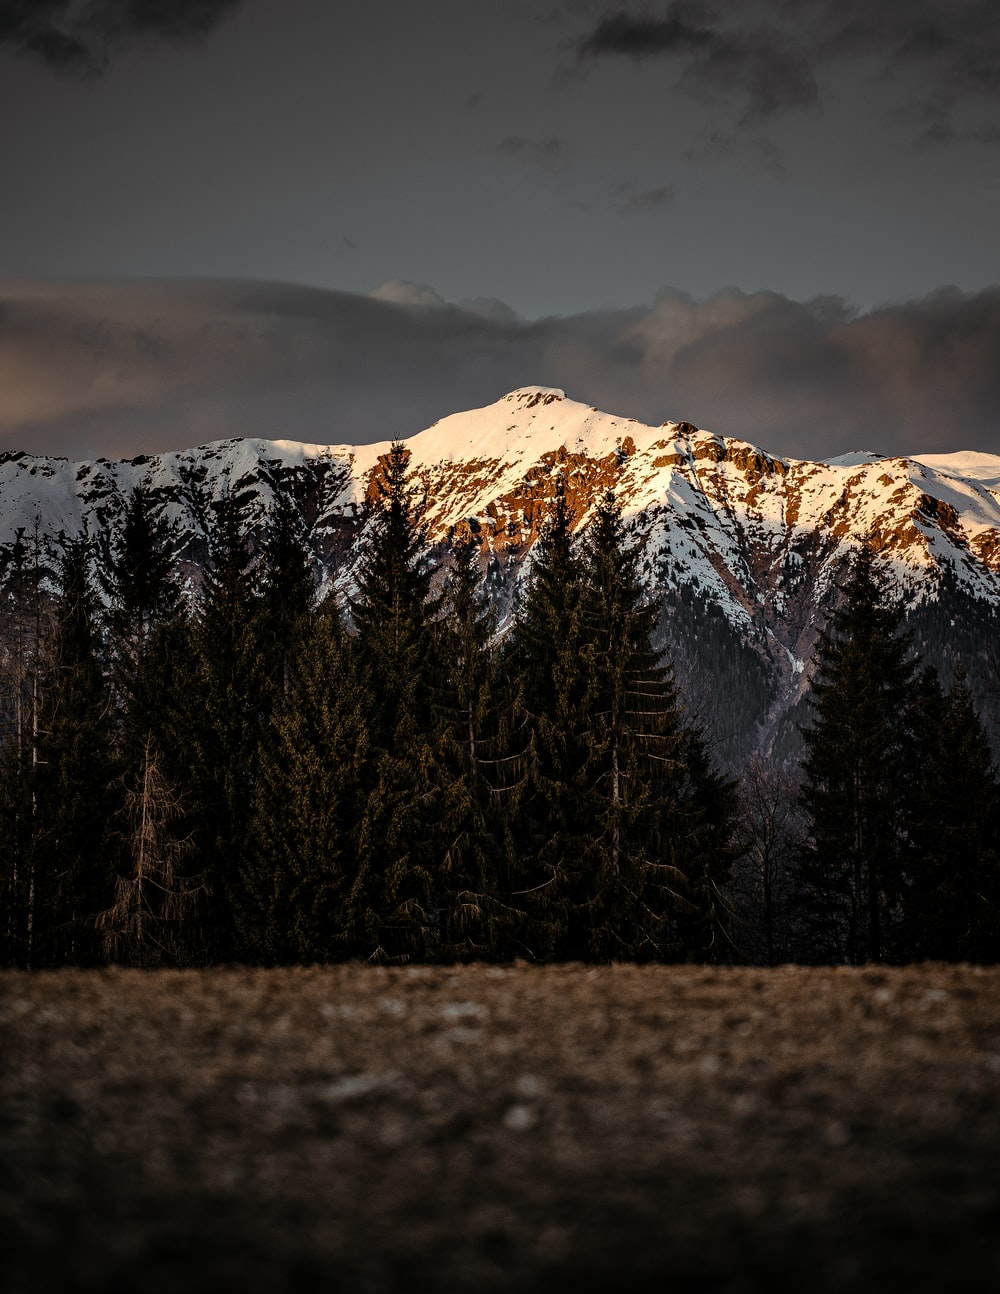 landscape photography of field viewing mountain covered with snow during daytime